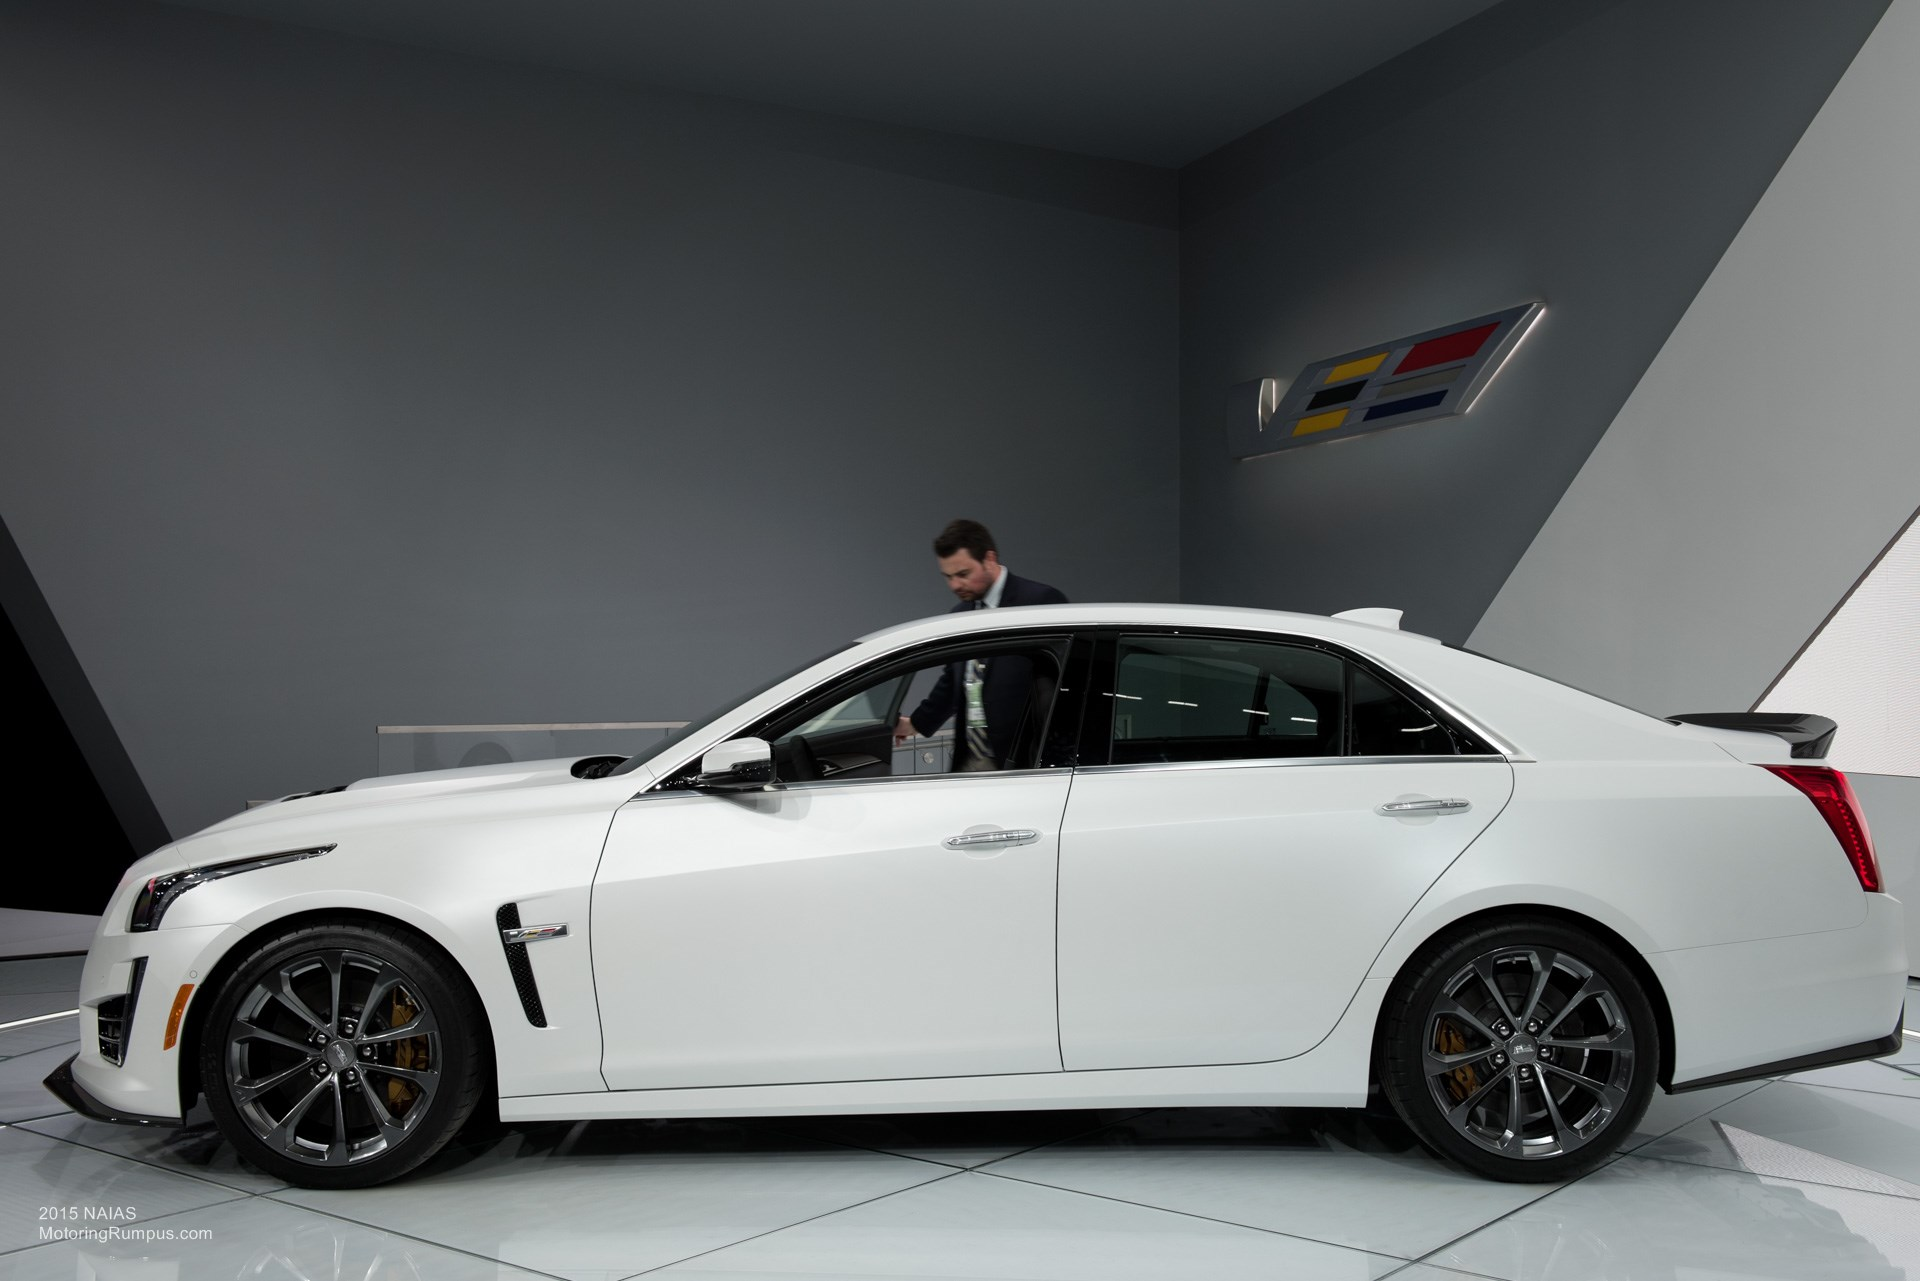 2015 cadillac cts v page 2 release date price and specs. Black Bedroom Furniture Sets. Home Design Ideas